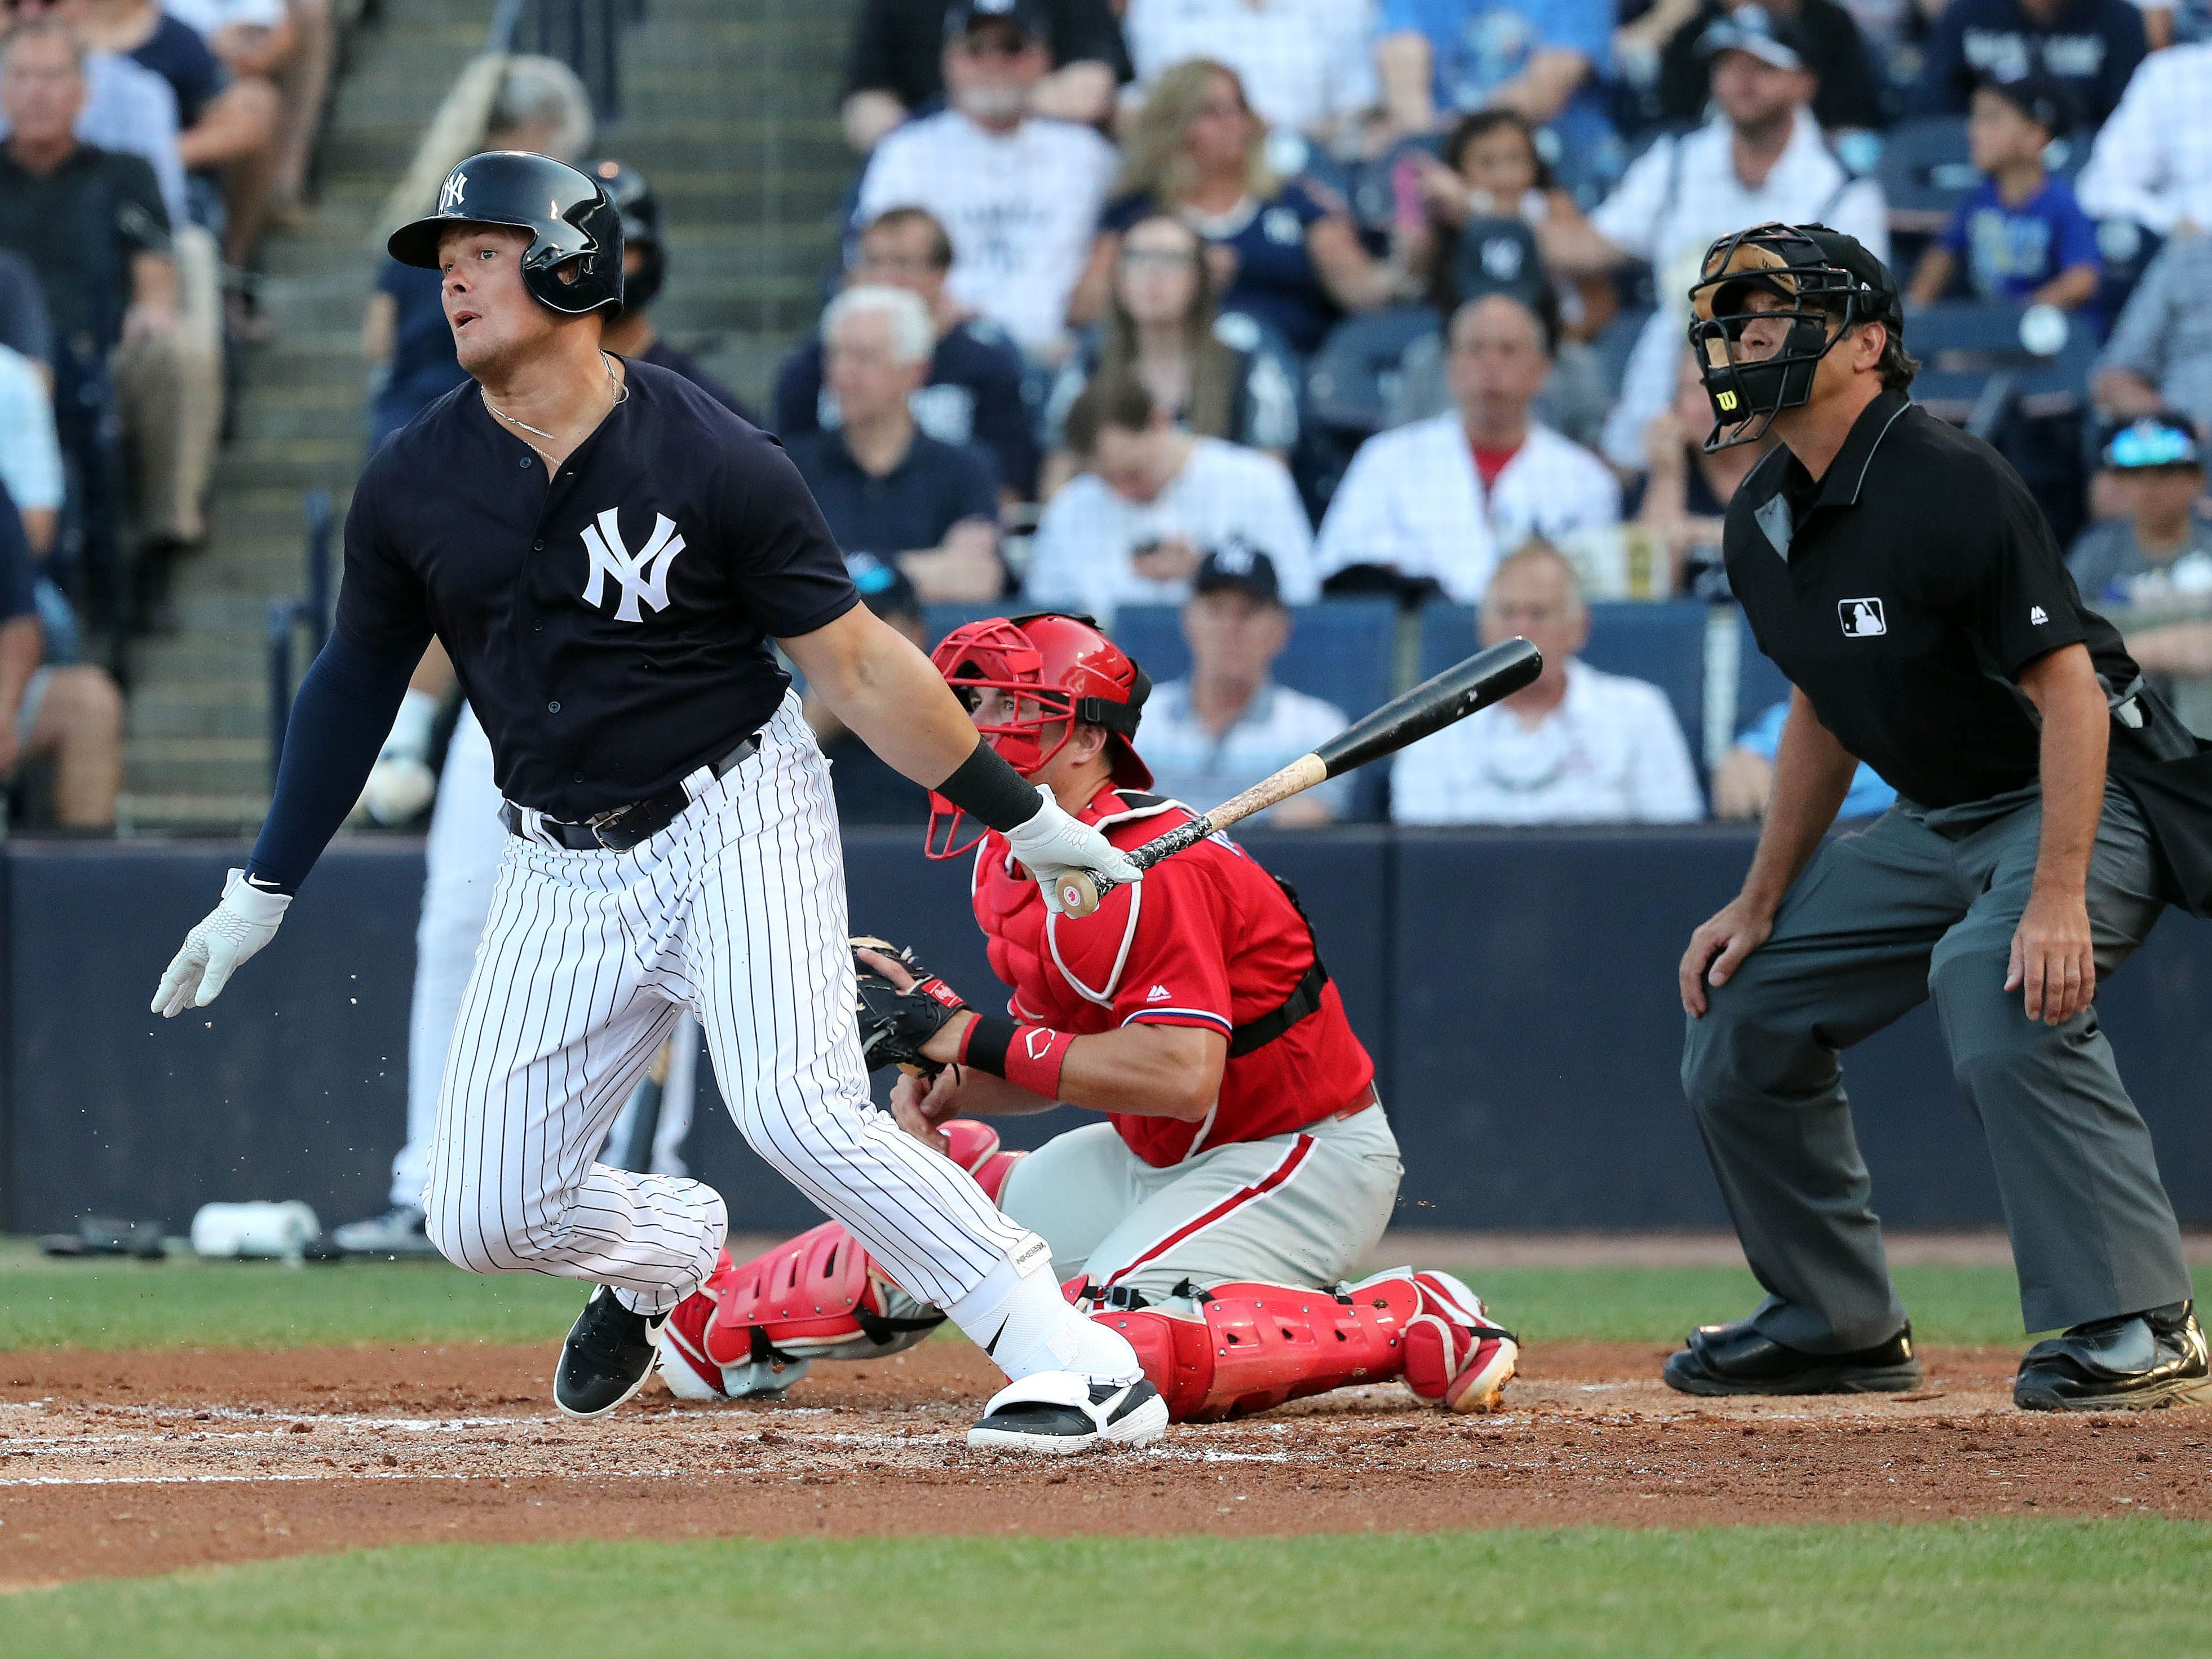 Mar 13, 2019; Tampa, FL, USA; New York Yankees first baseman Luke Voit (45) hits a RBI single during the first inning against the Philadelphia Phillies at George M. Steinbrenner Field.